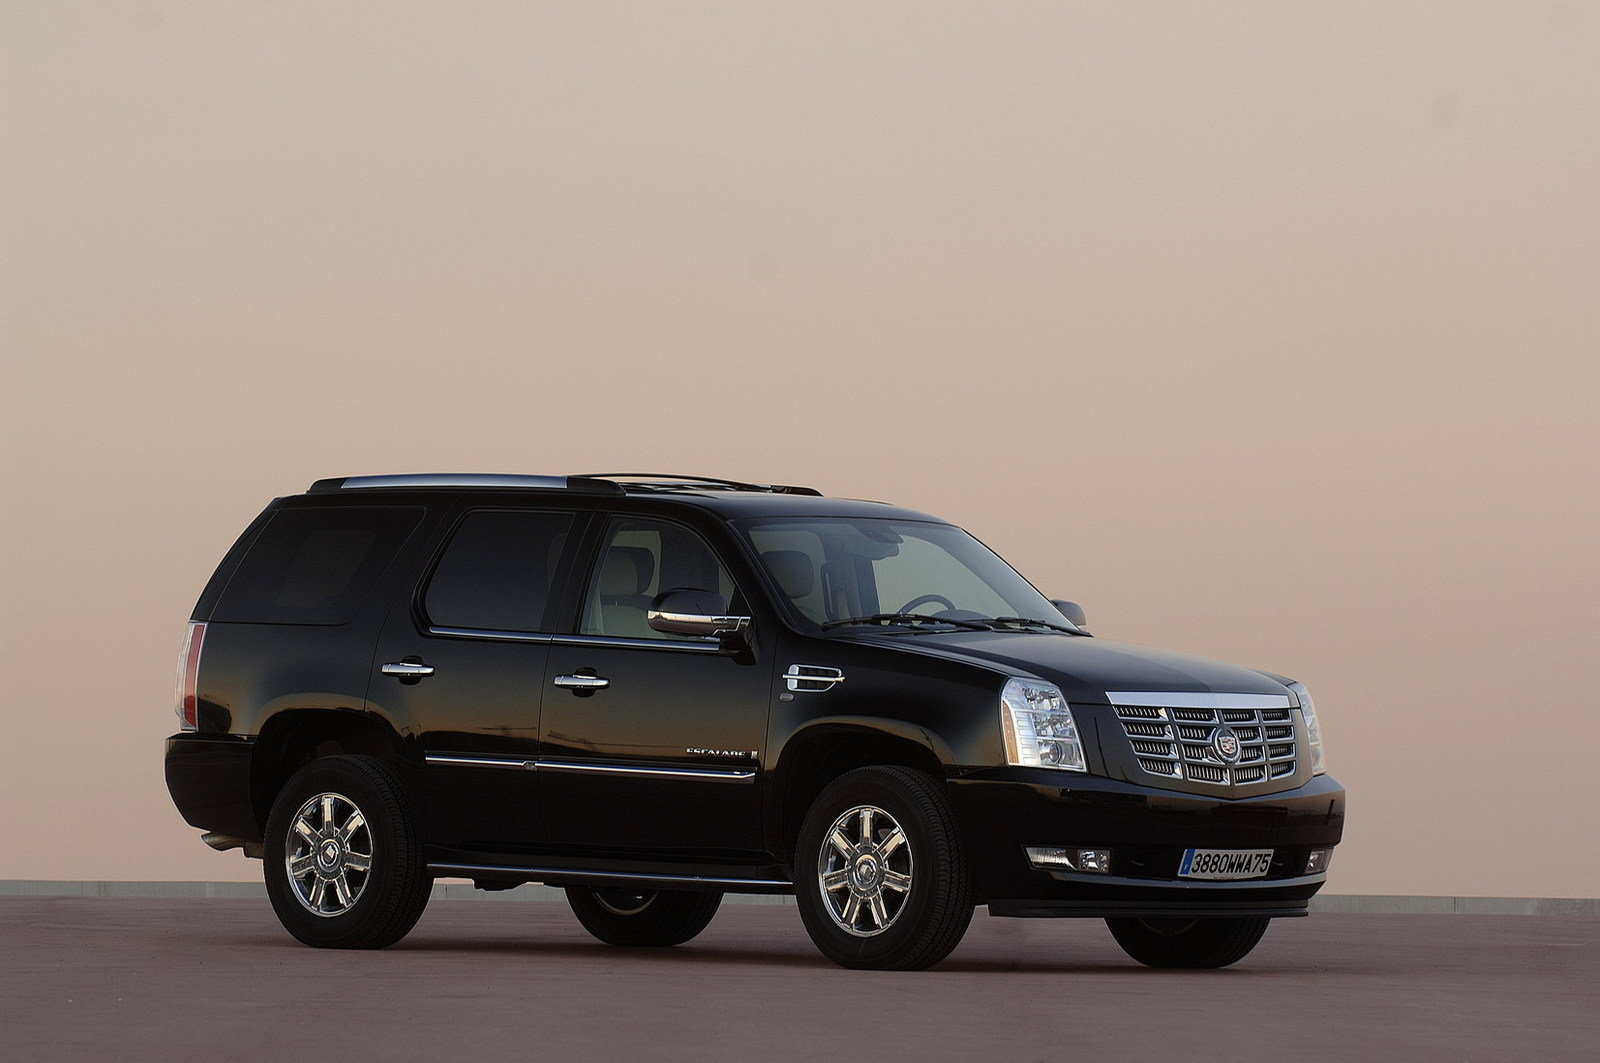 2007 cadillac escalade picture 139937 car review top speed. Black Bedroom Furniture Sets. Home Design Ideas